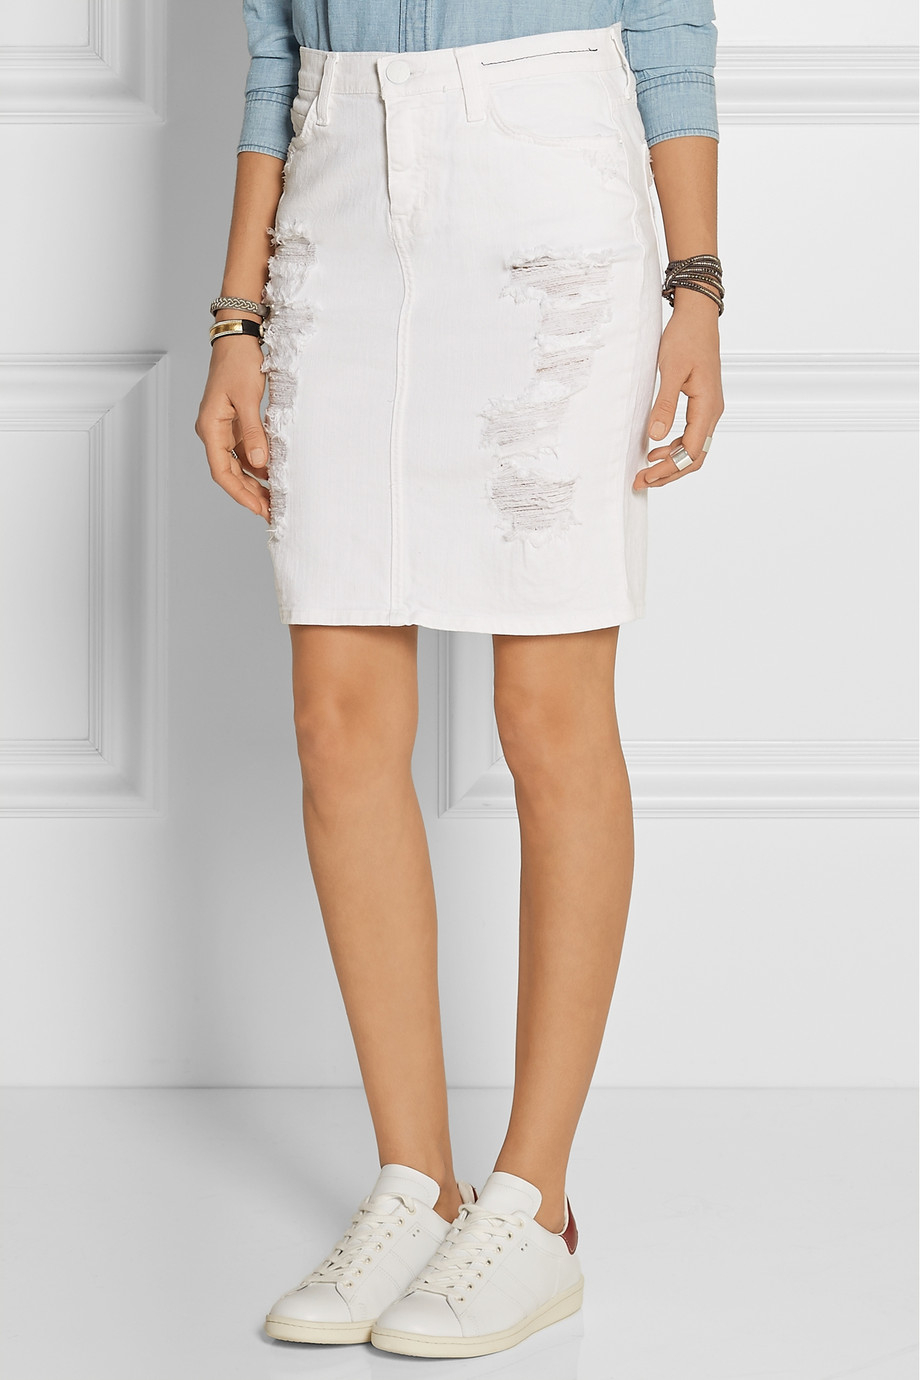 Current/elliott The Stiletto Distressed Stretch-Denim Pencil Skirt ...